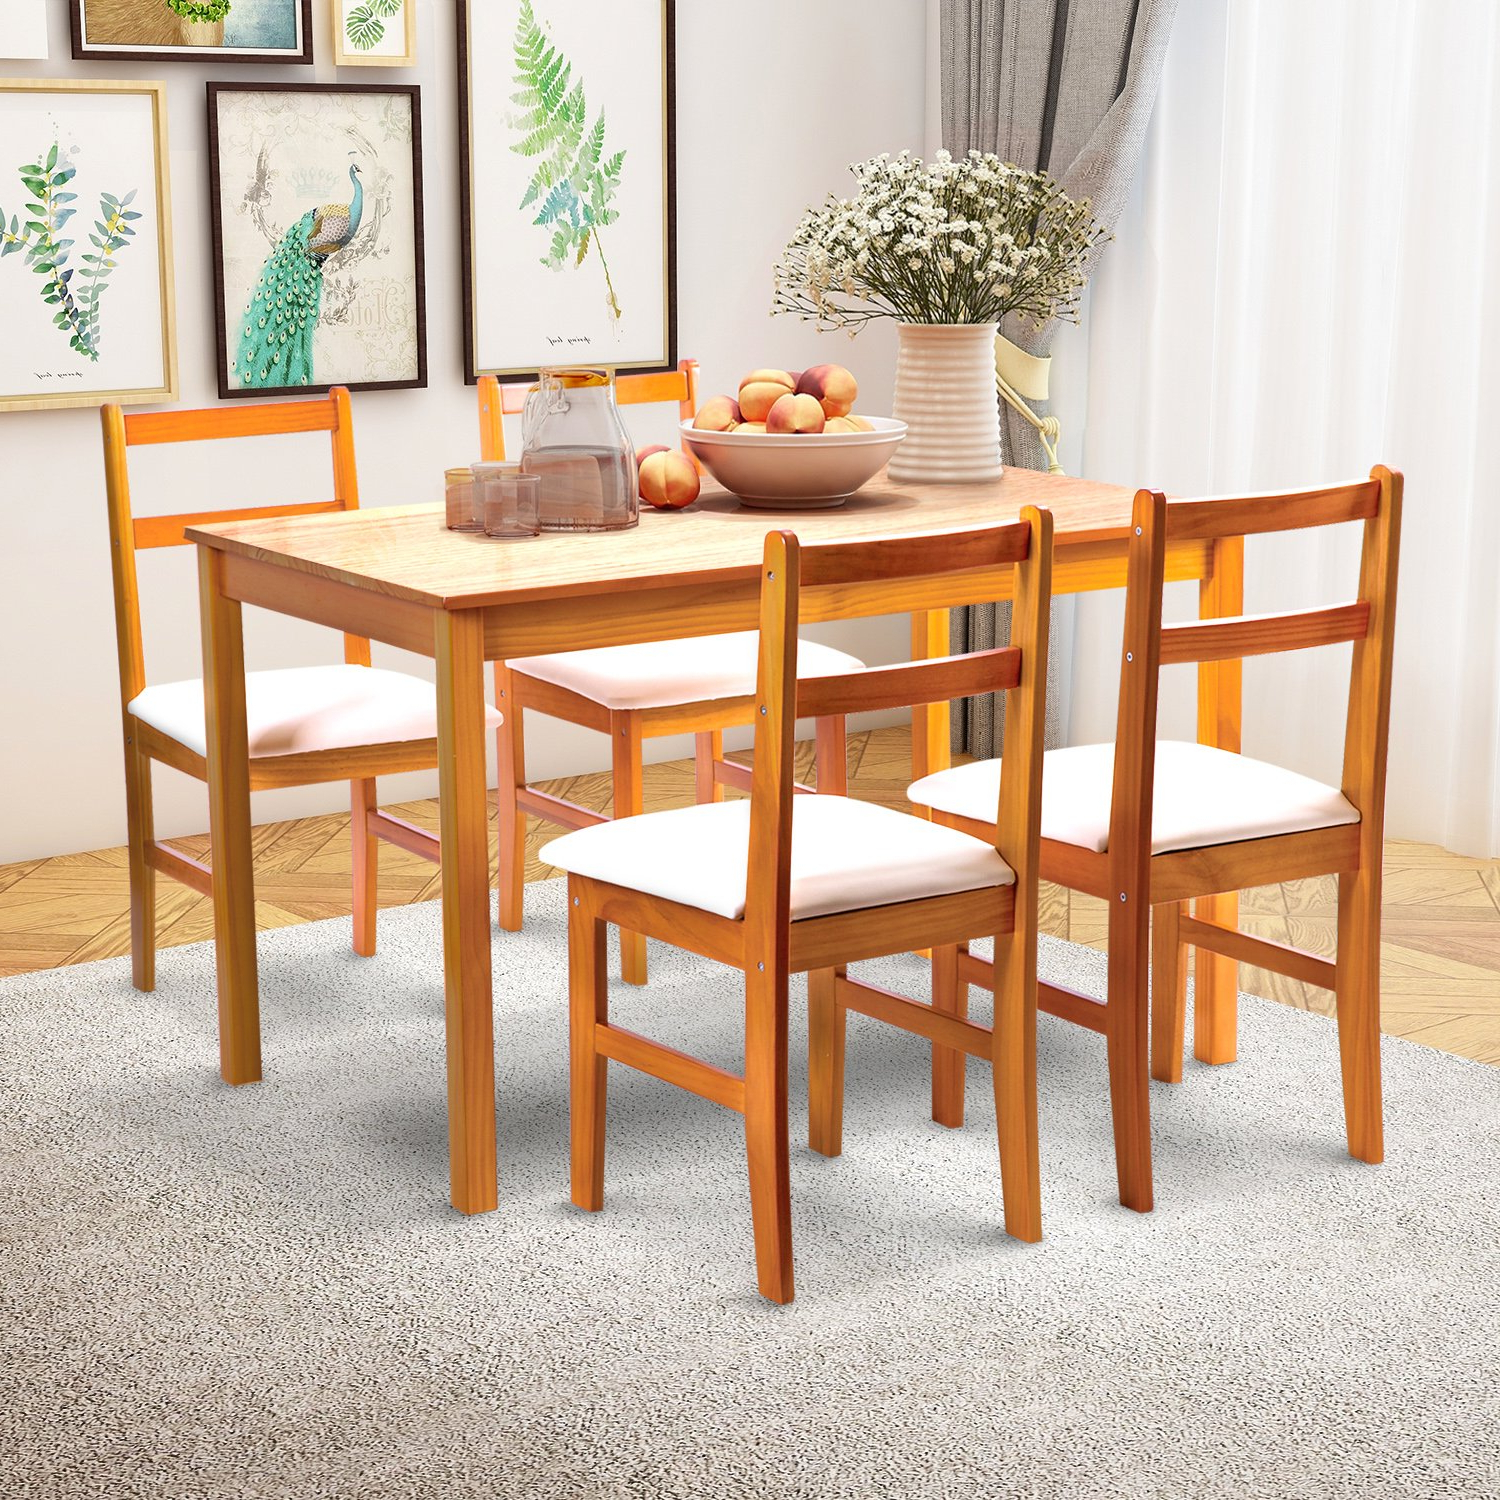 Favorite Furniture Giantex Modern Dining Table Mid Century Home Throughout Mid Century Rectangular Top Dining Tables With Wood Legs (View 16 of 30)